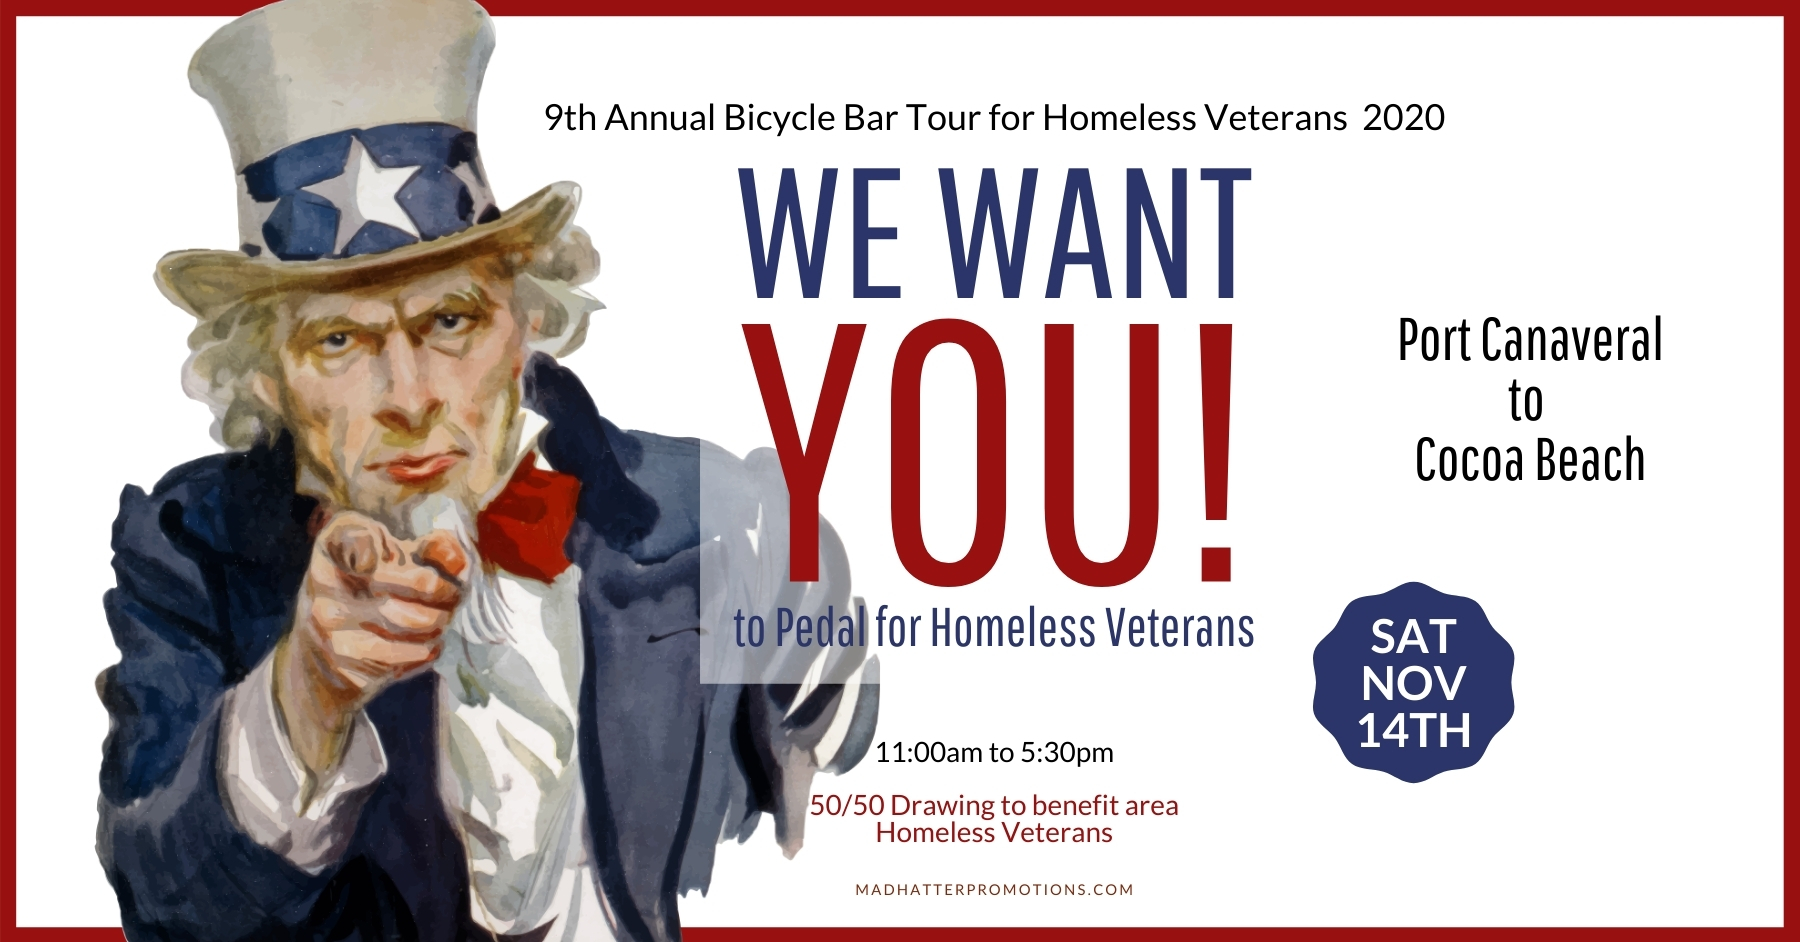 2020 Bicycle Bar Tour for Homeless Veterans